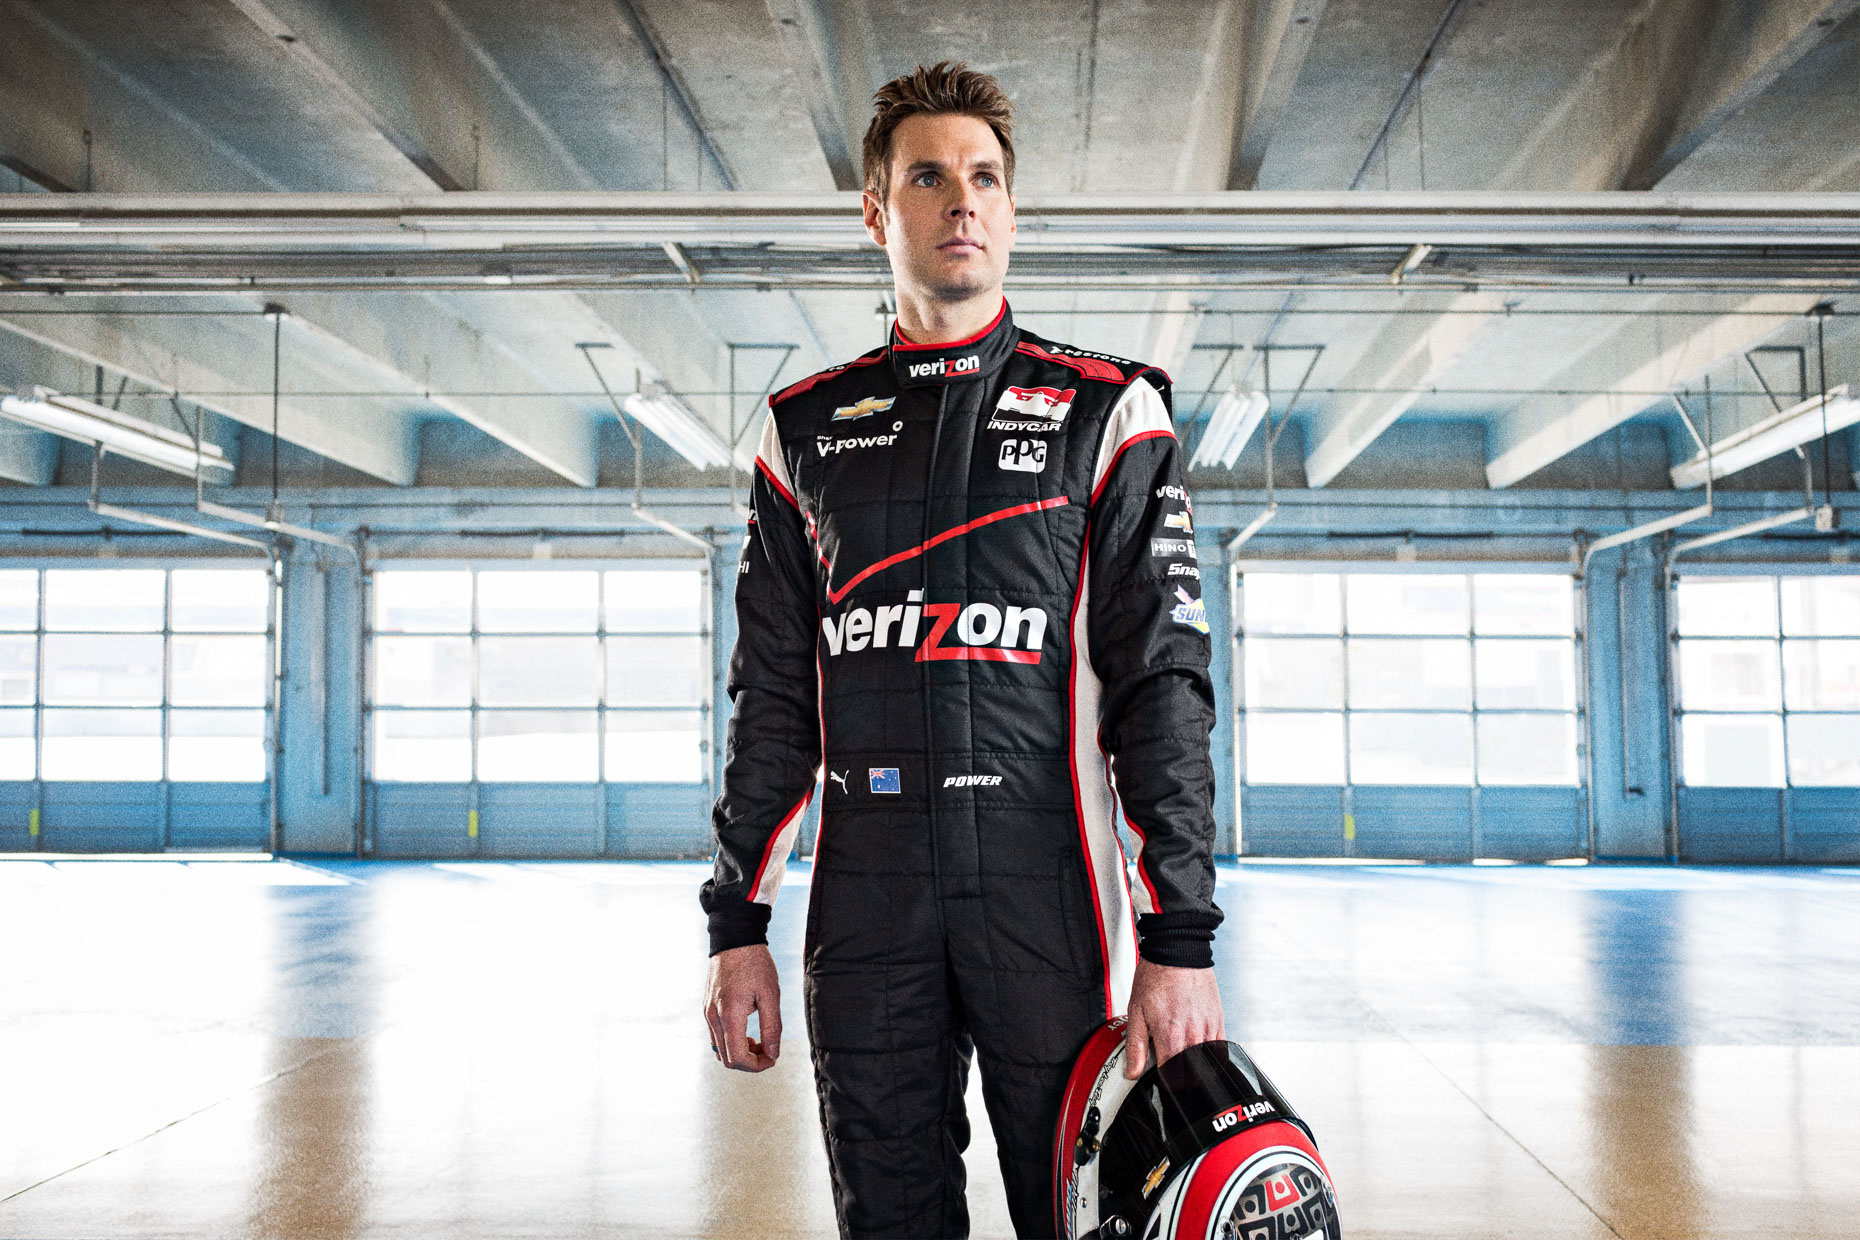 Portrait of athlete Will Power IndyCar Driver Team in the  Penske Garage at Charlotte Motor Speedway by Andy Batt